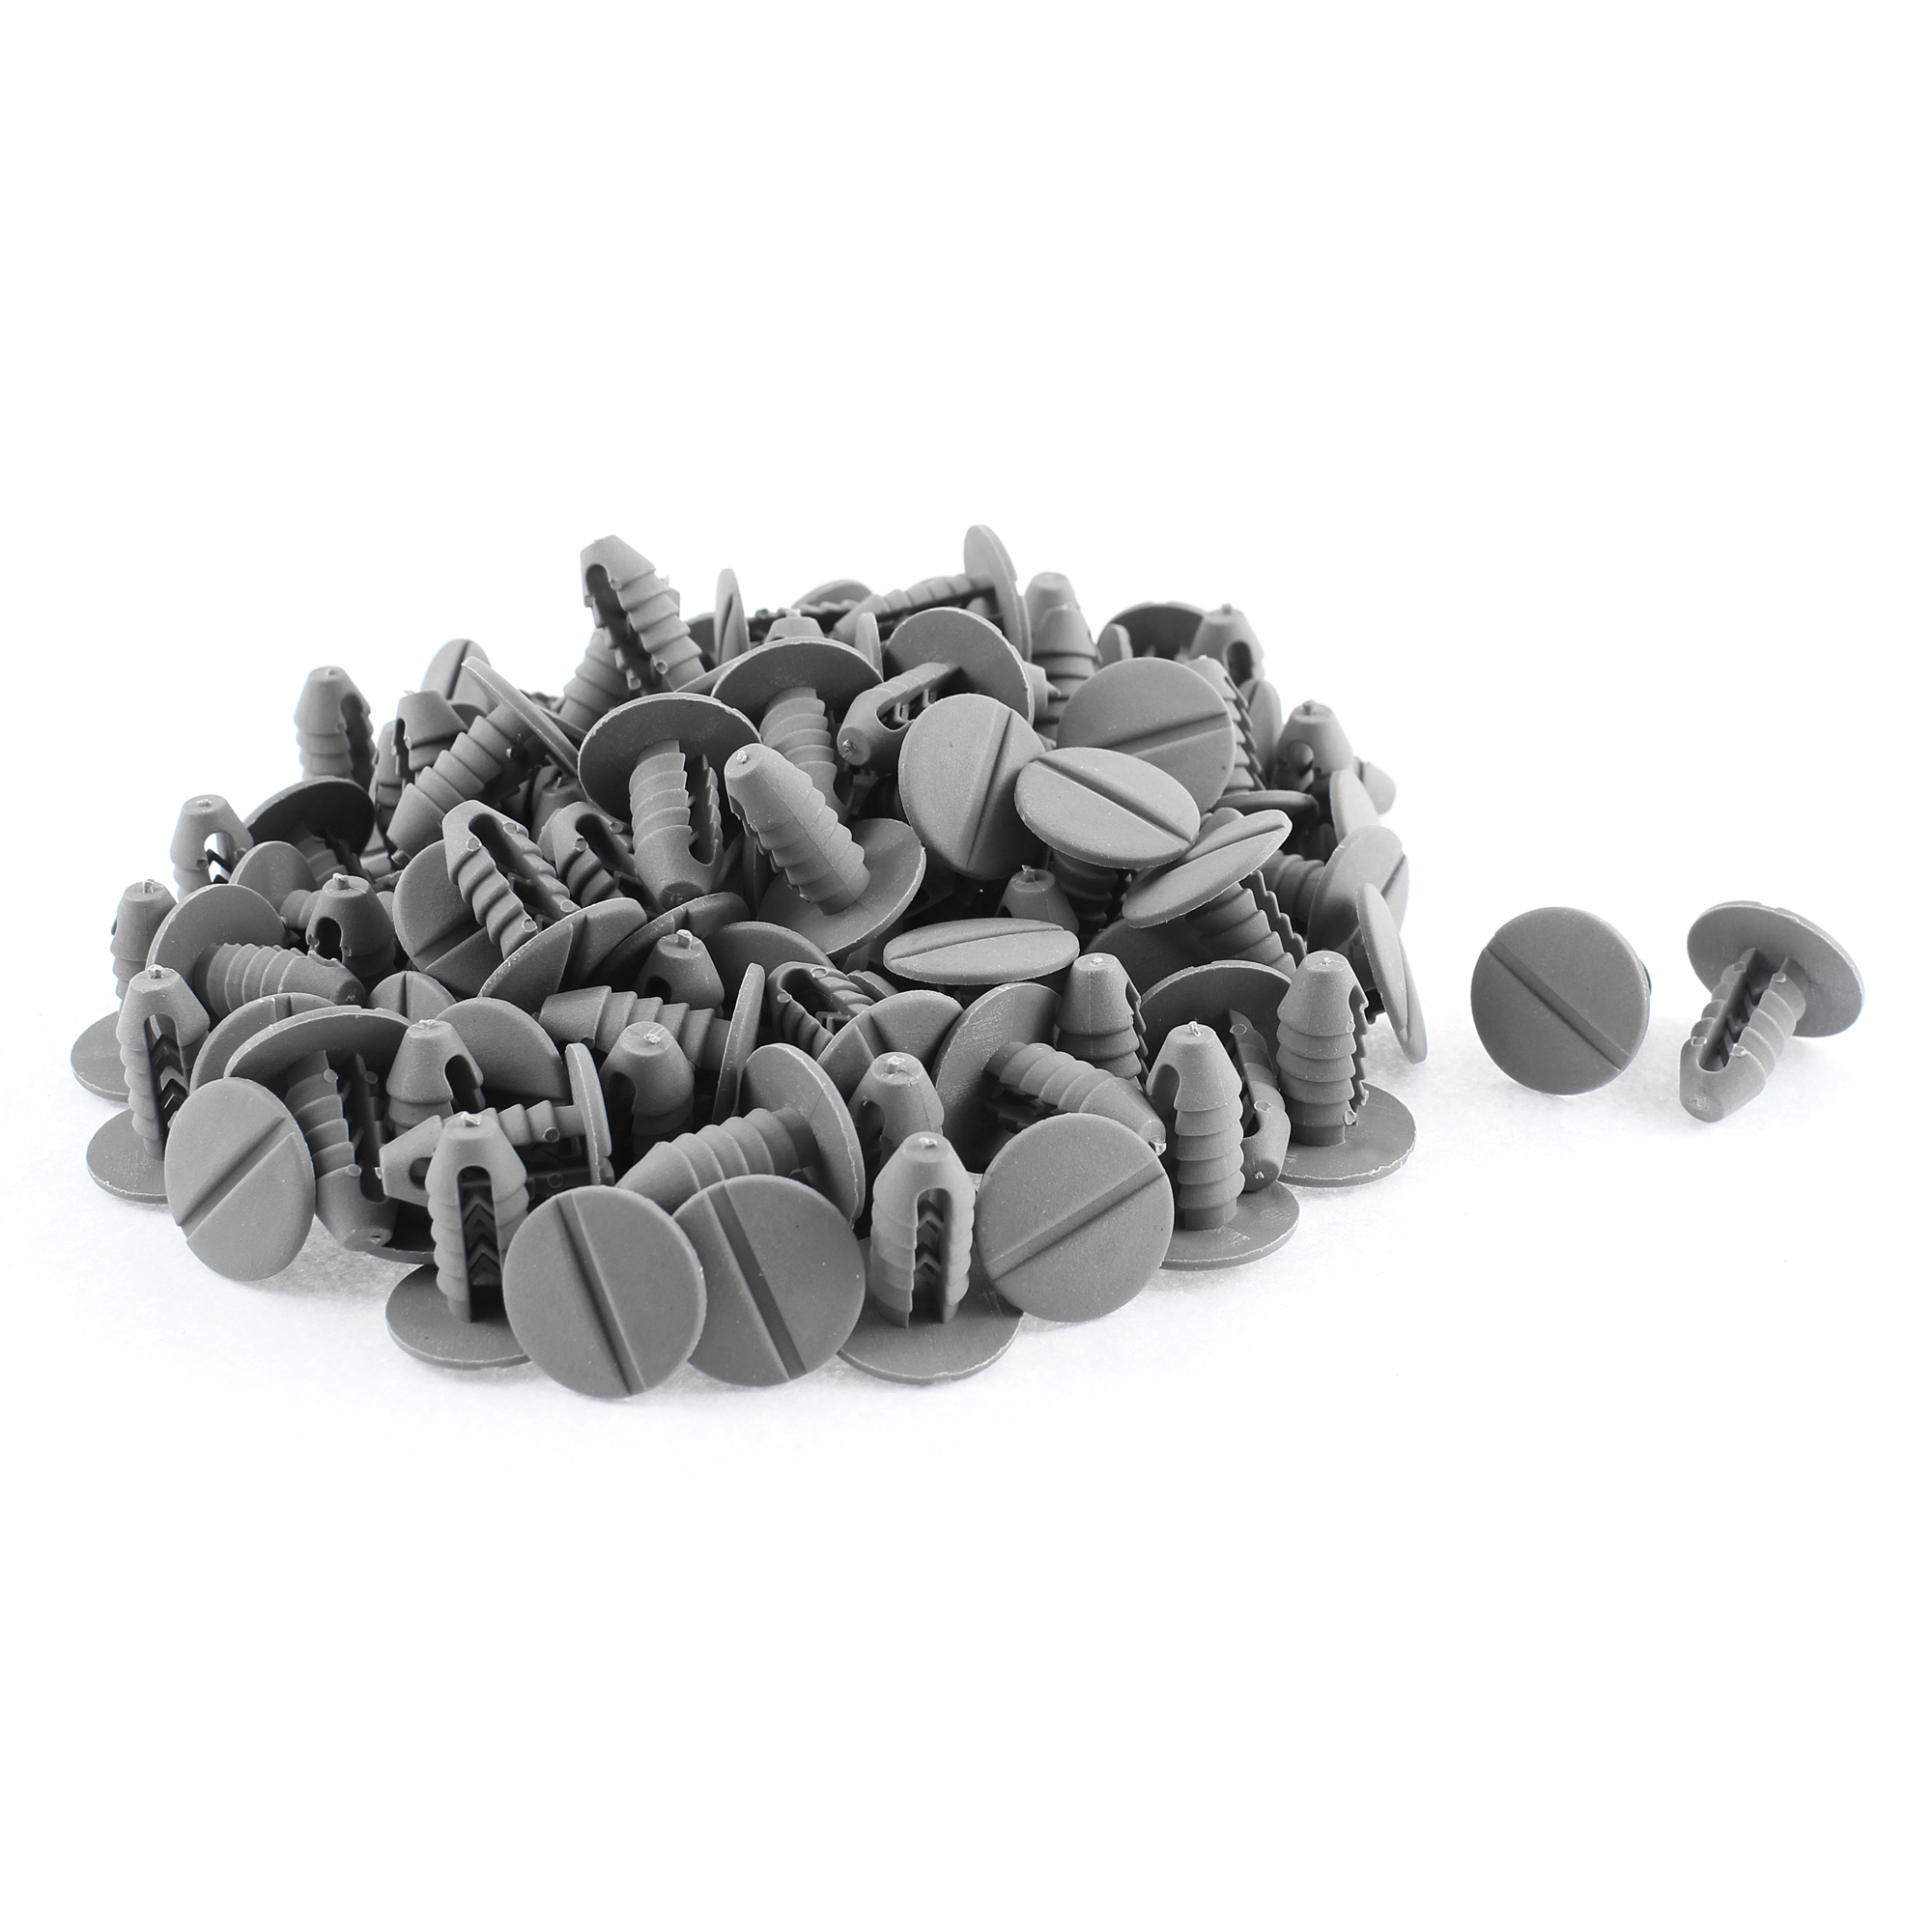 100 Pcs Gray Plastic Door Weatherstrip Moulding Rivet for Iveco